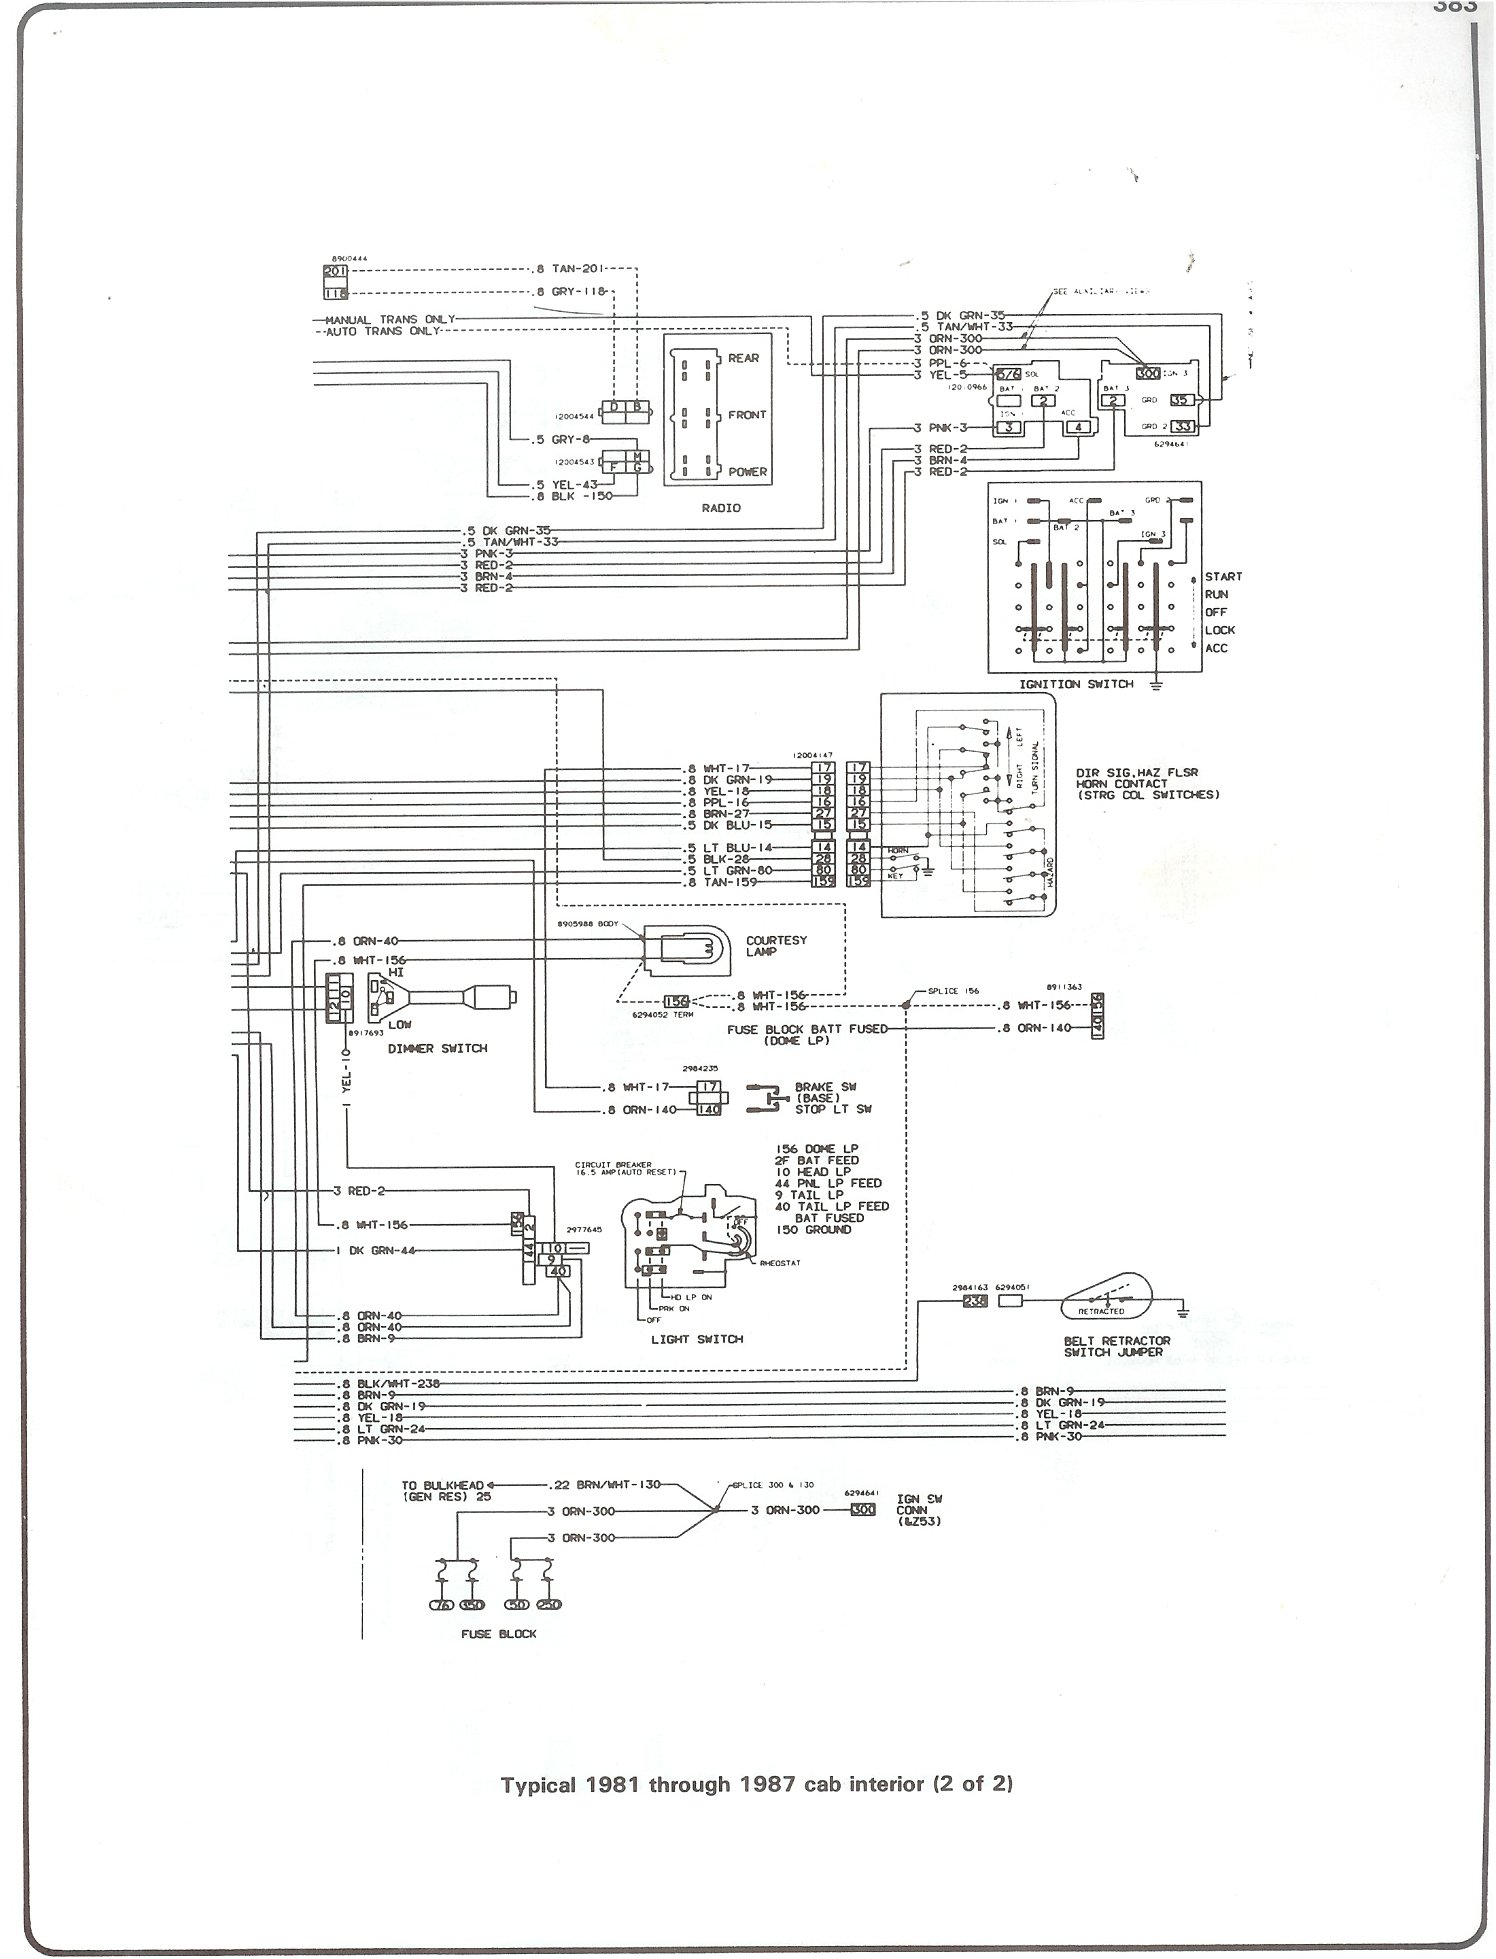 81 Corvette Power Window Wiring Diagram 1980 camaro fuse box ... on 81 camaro frame, 81 camaro wiring harness, 81 camaro spindle, 81 camaro engine, 81 camaro ac compressor, 81 camaro gas tank,